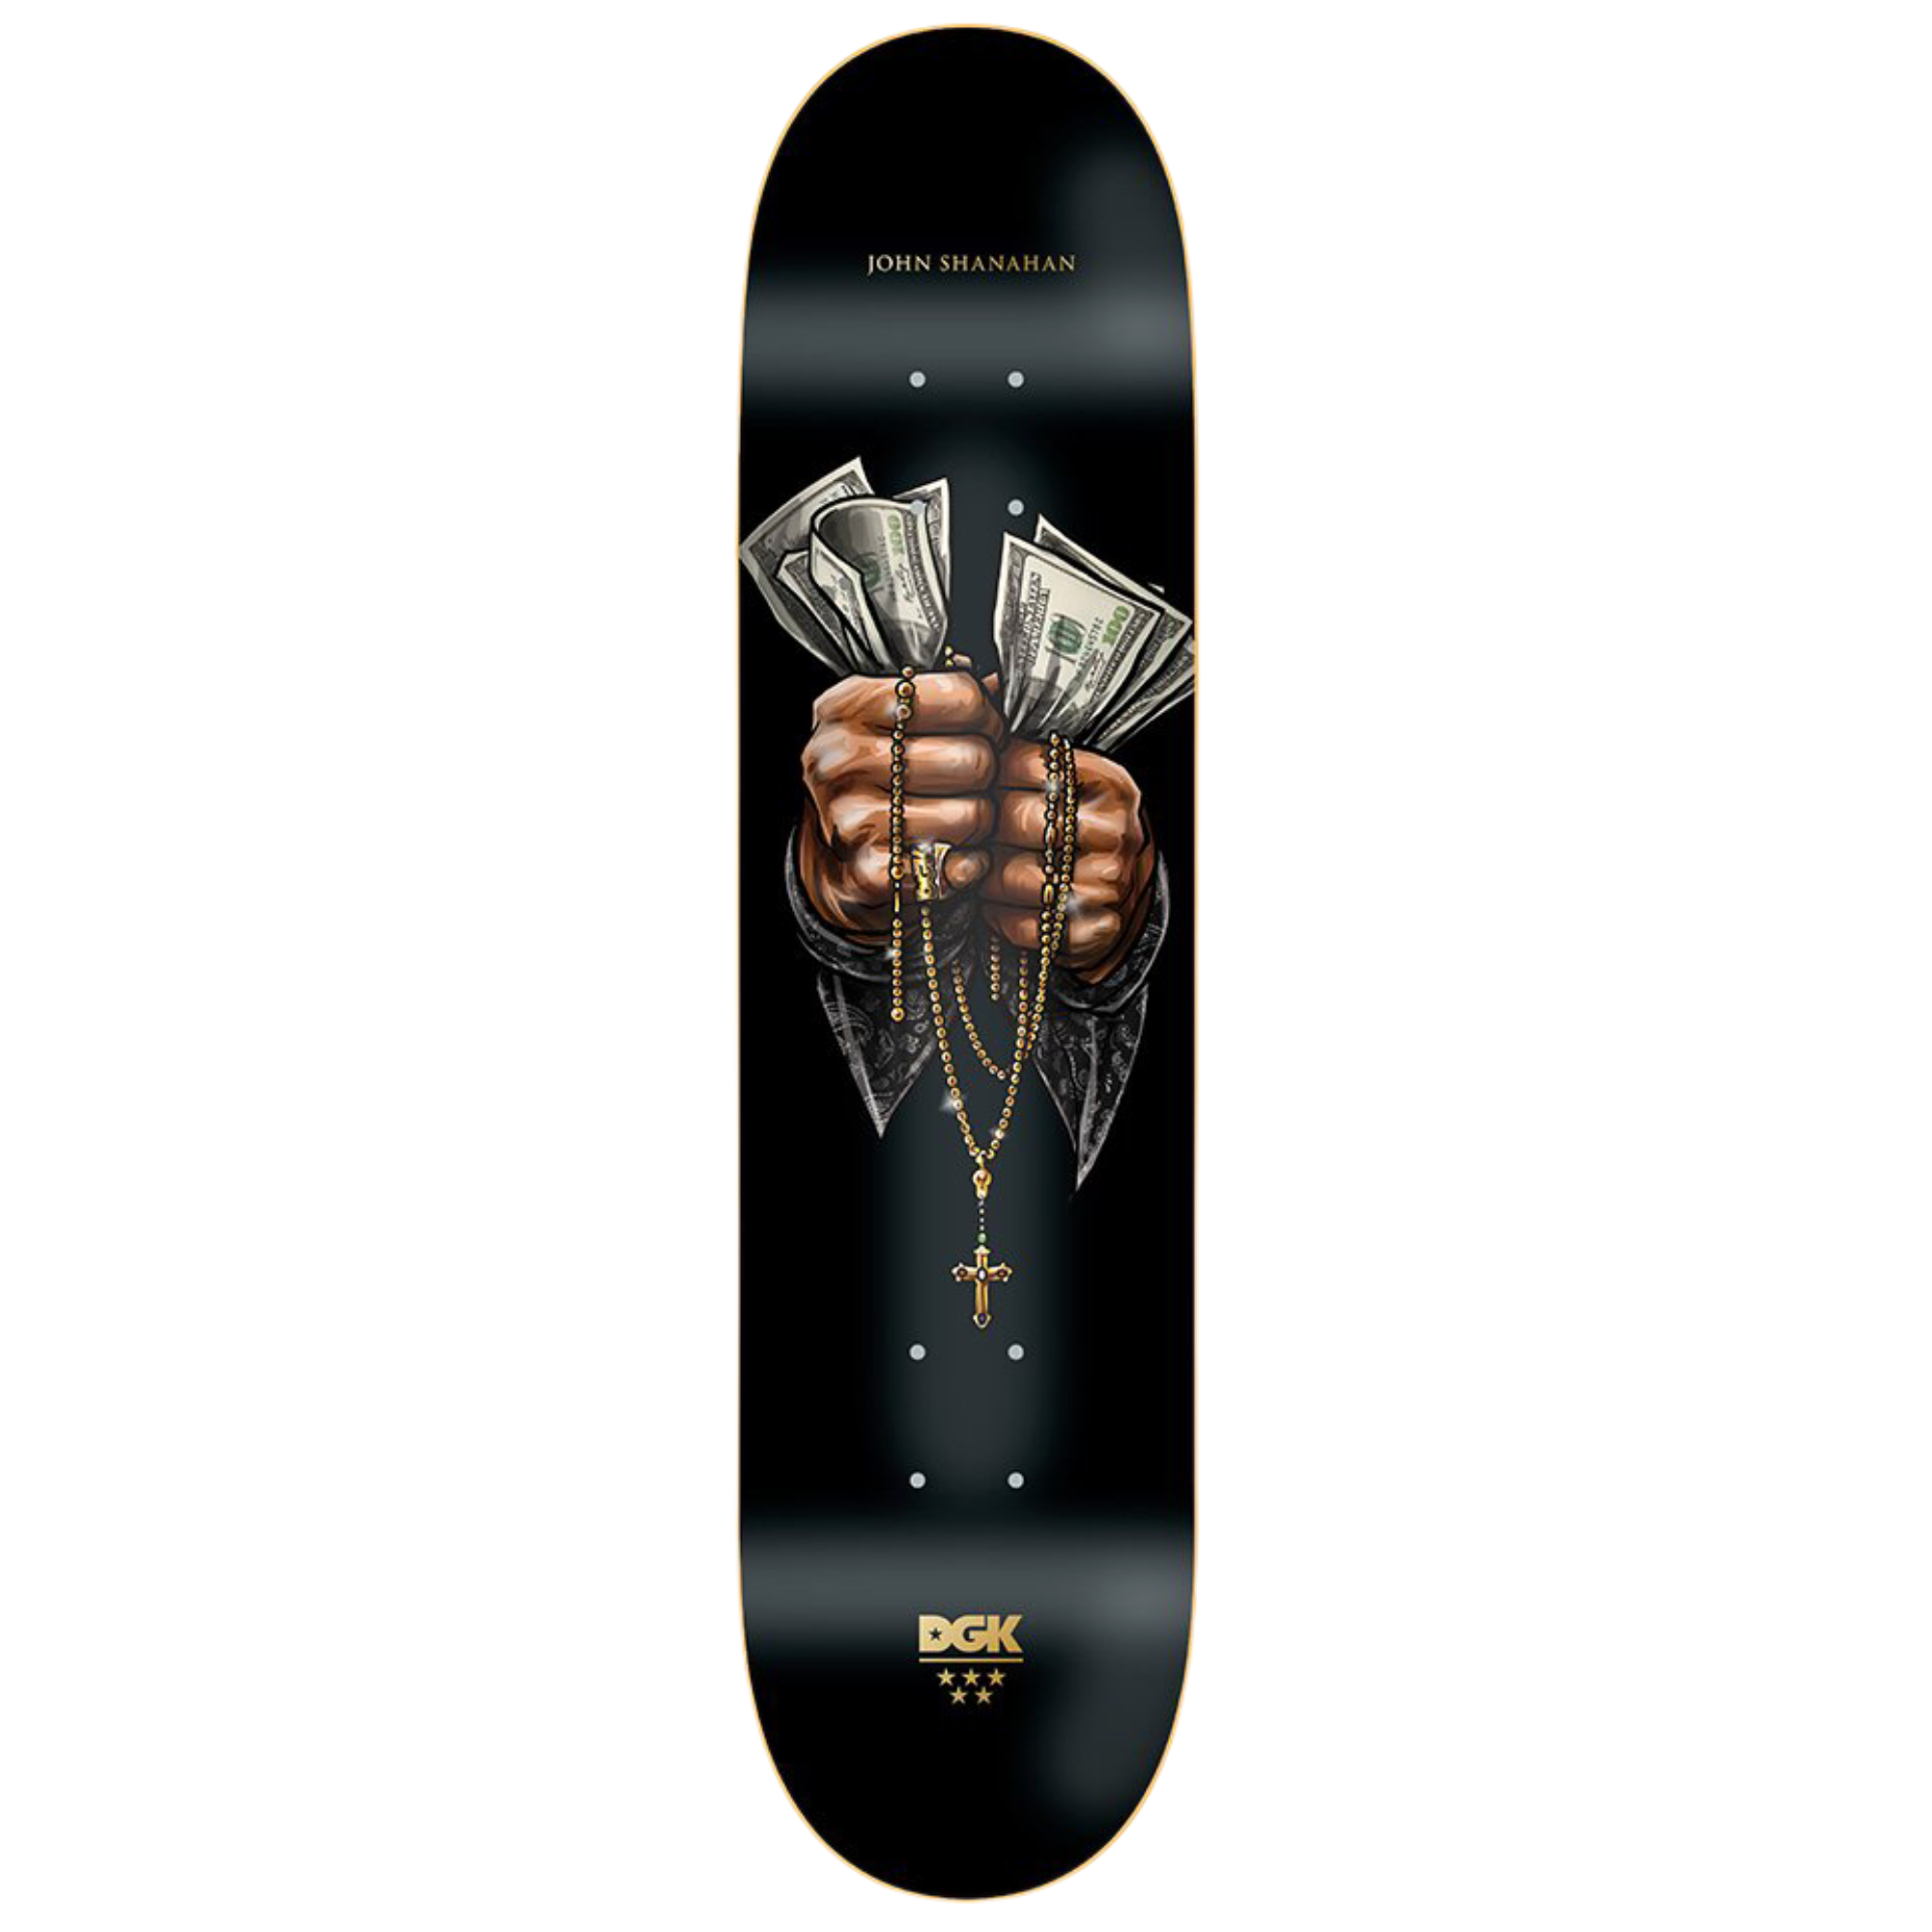 DGK Faith John Shanahan Deck 8.0""